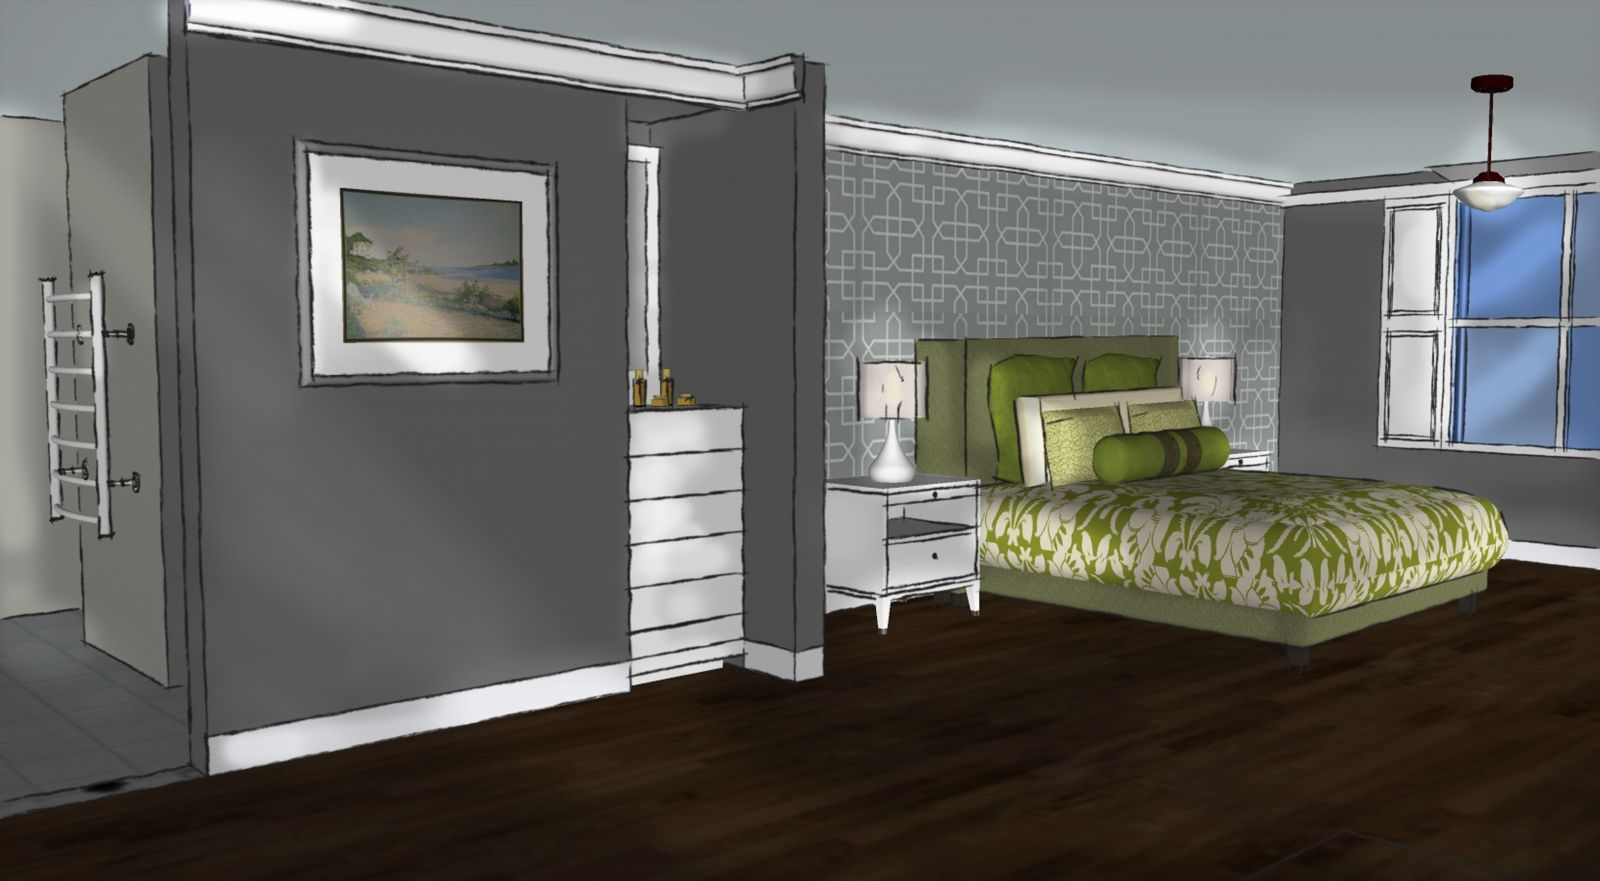 Bedroom dressing room ensuite ideas google search for Ensuite ideas